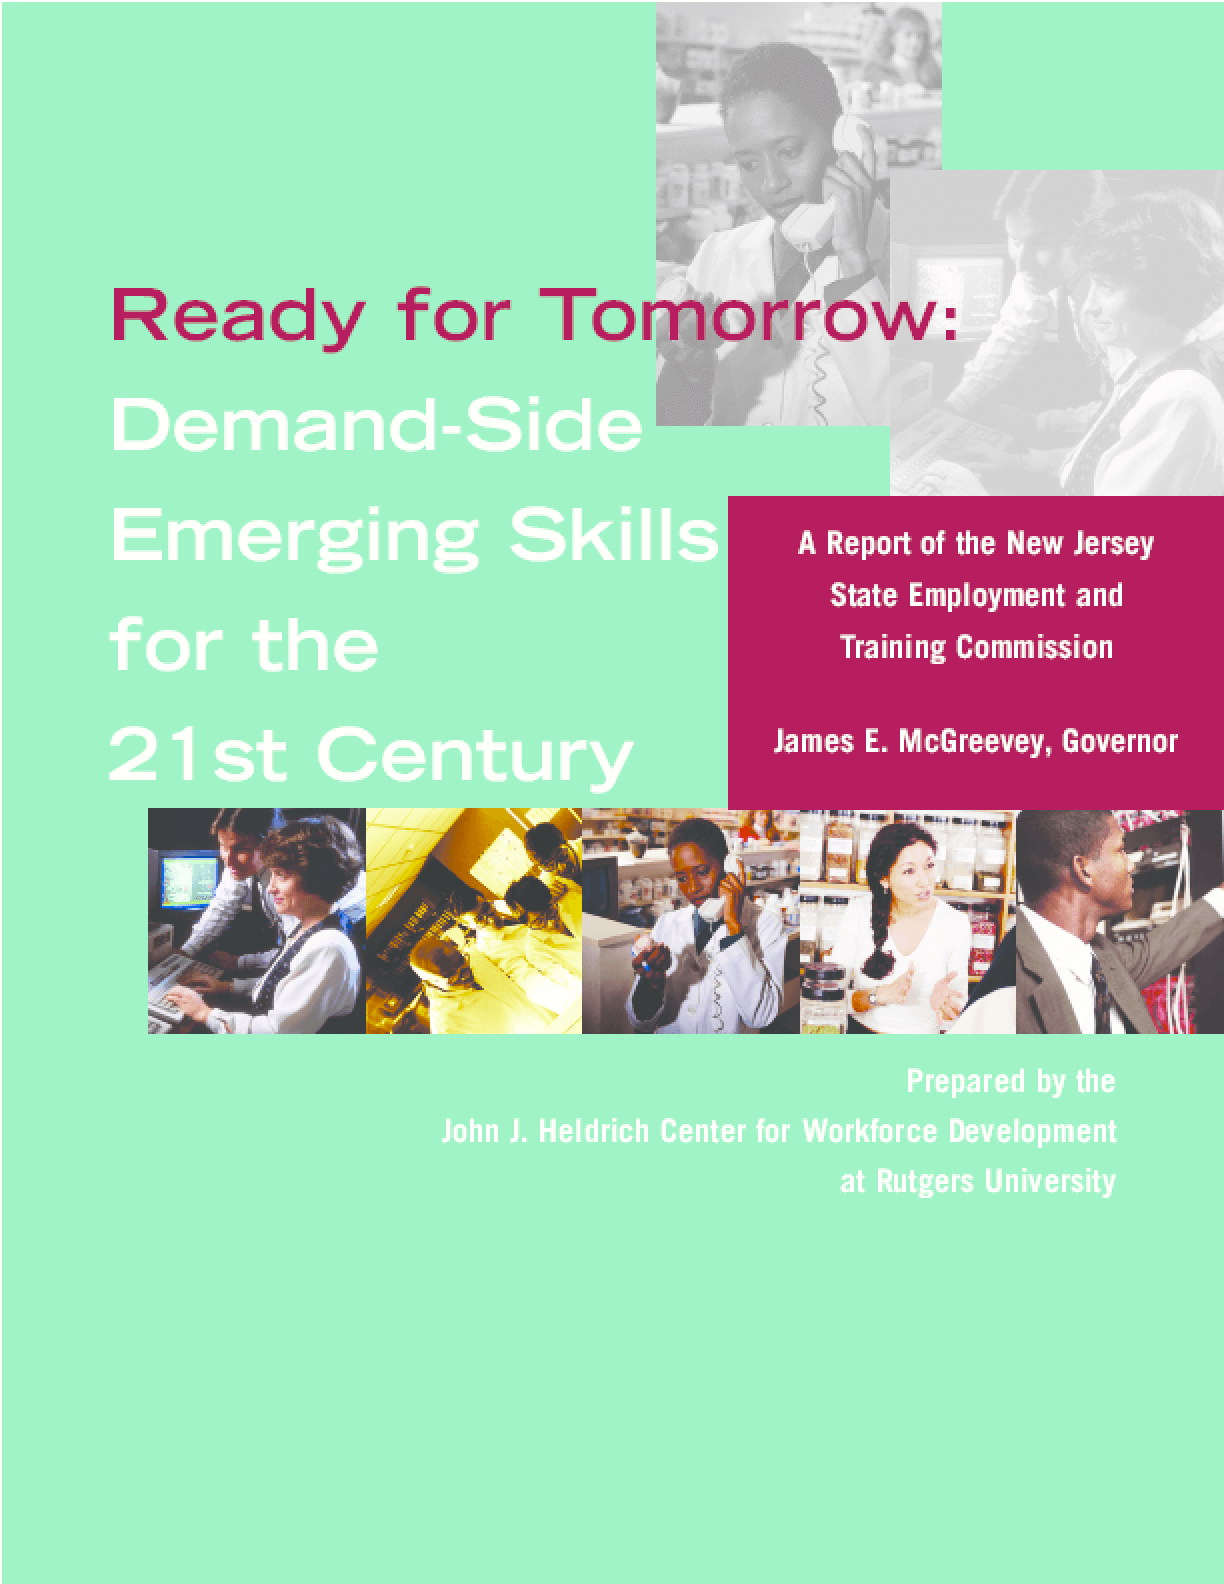 Ready for Tomorrow: Demand-Side Emerging Skills for the 21st Century